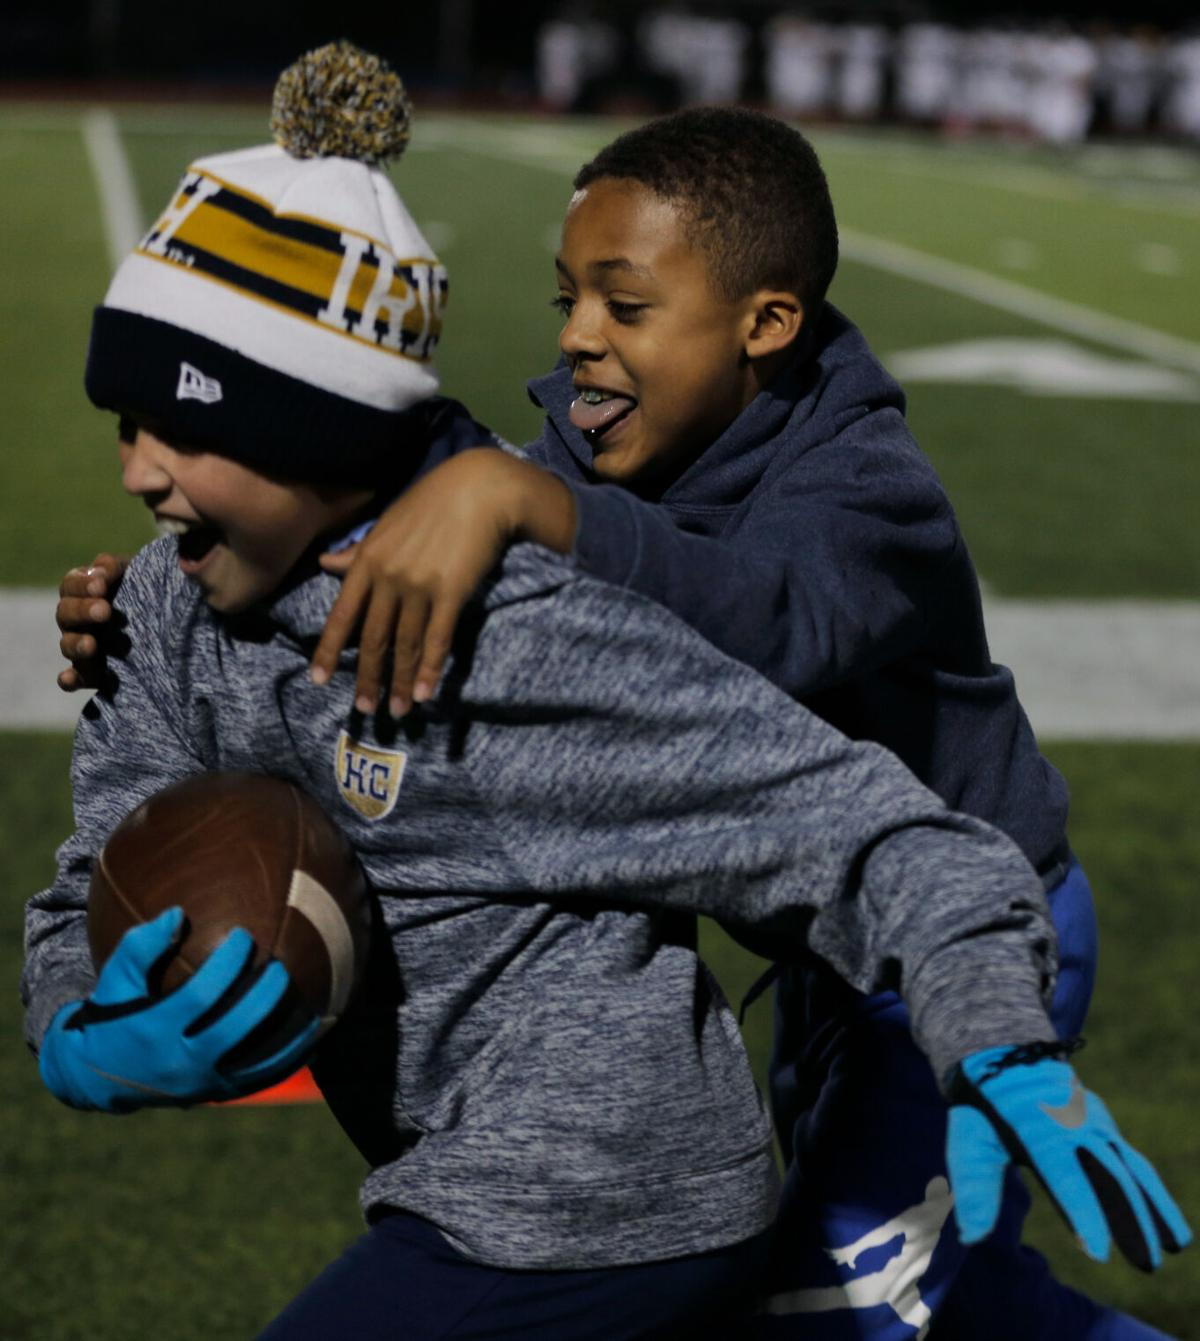 Brenden Ralston, 9, and Keegan Bell, 10, play their own game of football